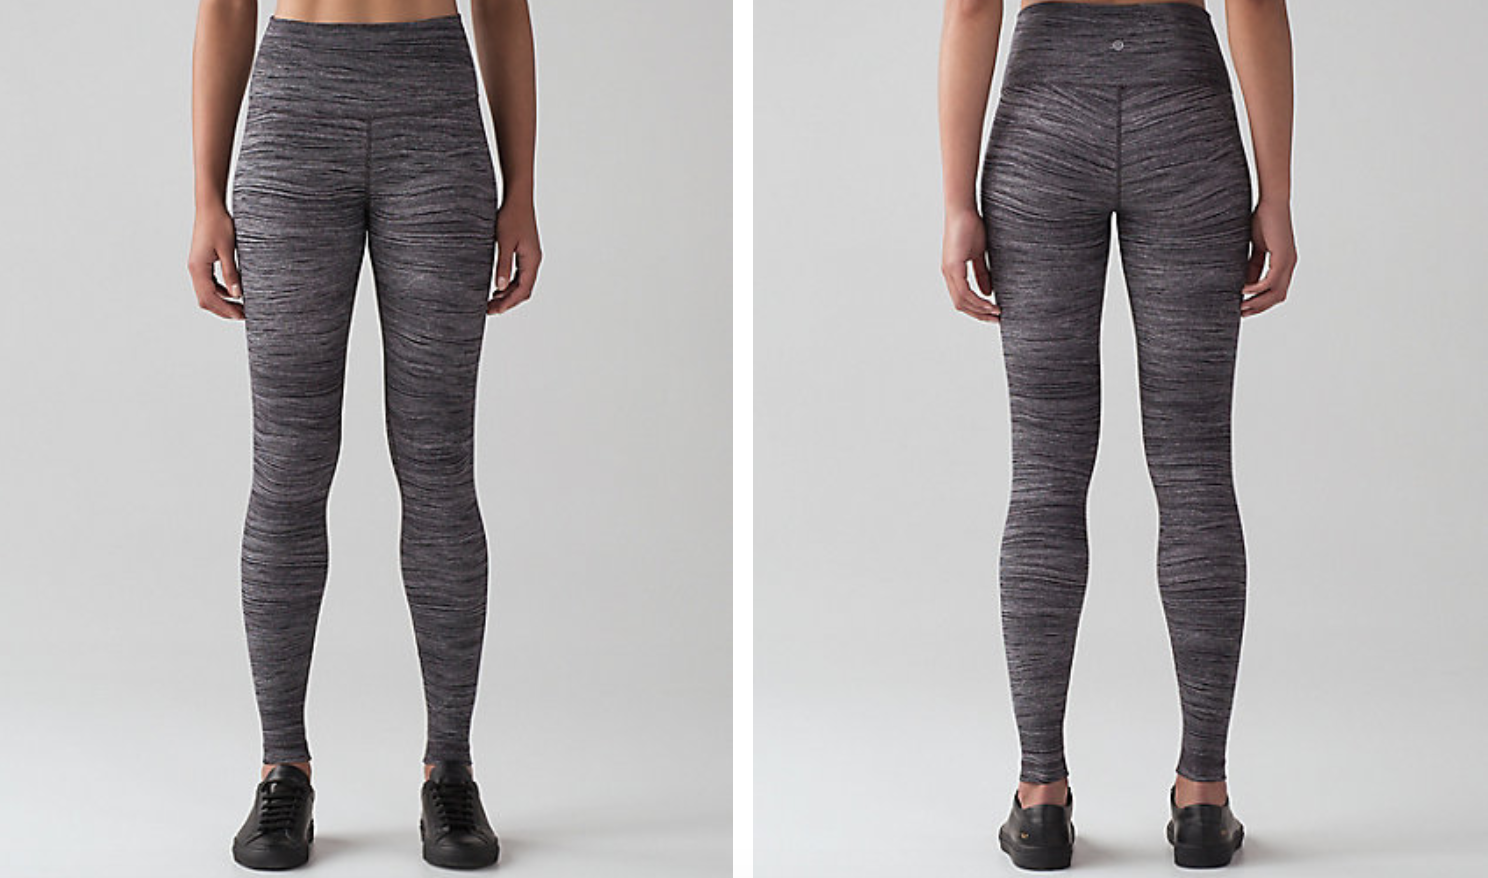 https://api.shopstyle.com/action/apiVisitRetailer?url=https%3A%2F%2Fshop.lululemon.com%2Fp%2Fwomen-pants%2FWunder-Under-HR-Tight-Fullux%2F_%2Fprod8470037%3Frcnt%3D8%26N%3D1z13ziiZ7z5%26cnt%3D59%26color%3DLW5AOZS_029270&site=www.shopstyle.ca&pid=uid6784-25288972-7